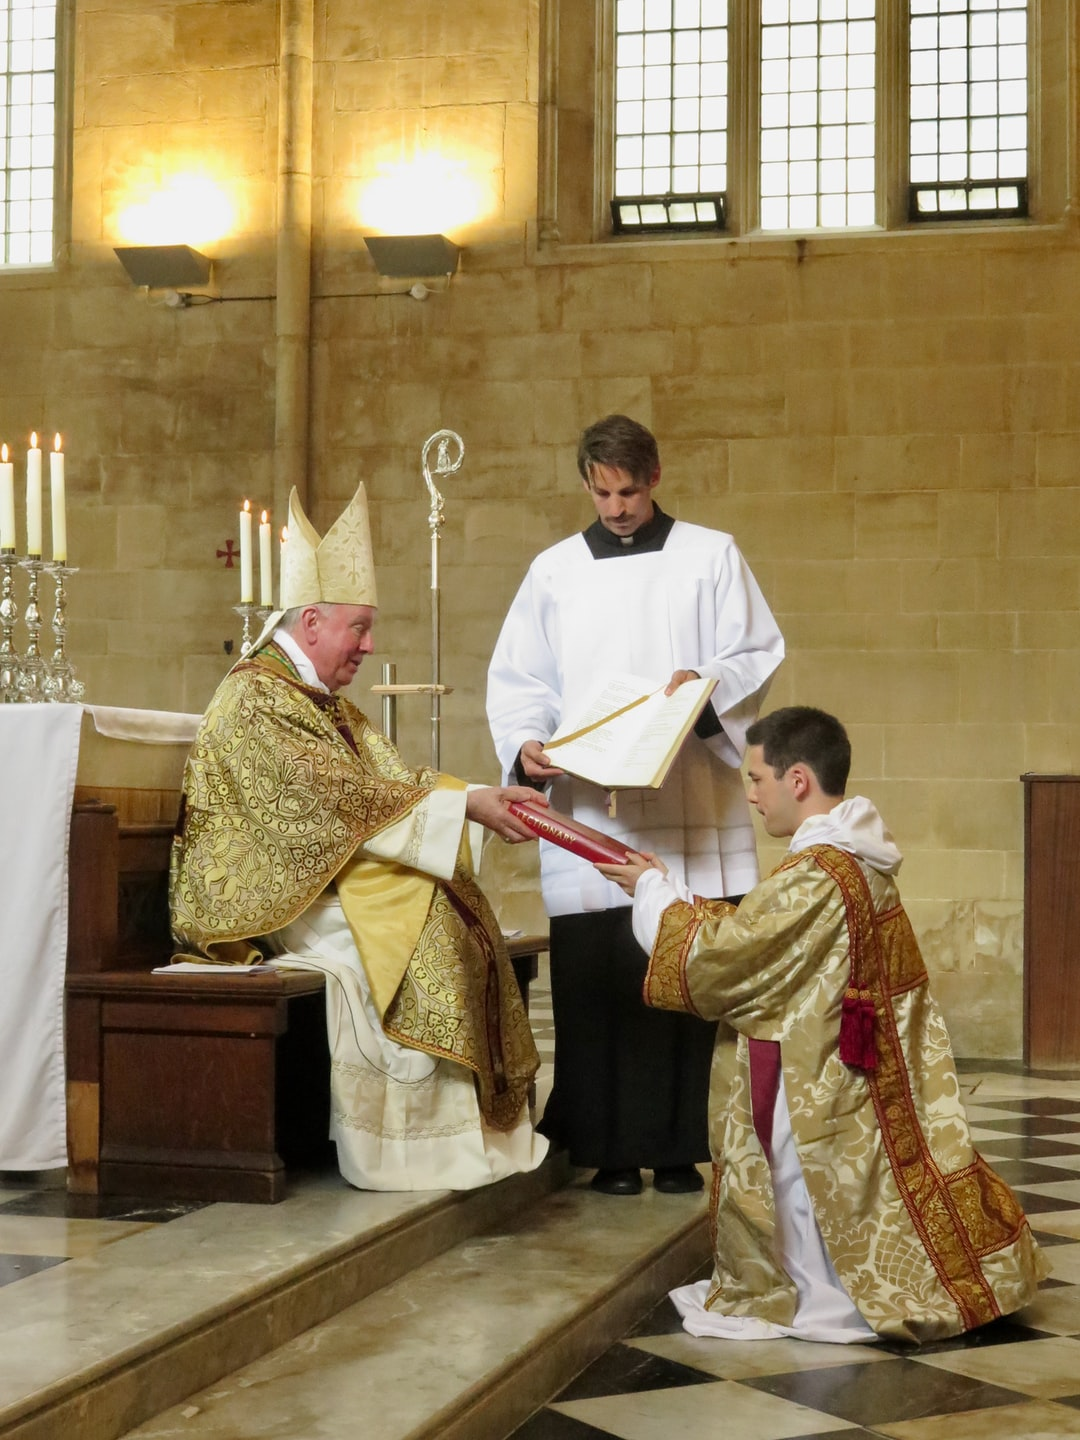 """""""Receive the Gospel of Christ whose herald you have become. Believe what you read, teach what you believe, and practice what you teach."""", Bishop says to the new deacon.  Blackfriars, the Oxford house of the worldwide Dominican Order: Ordination of Brother Joseph (Shaun) Bailham O.P. to the diaconate by Bishop Philip Egan on Saturday 4 July 2020, the memoria of Blessed Pier Giorgio Frassati, to whom Brother Joseph has a devotion."""